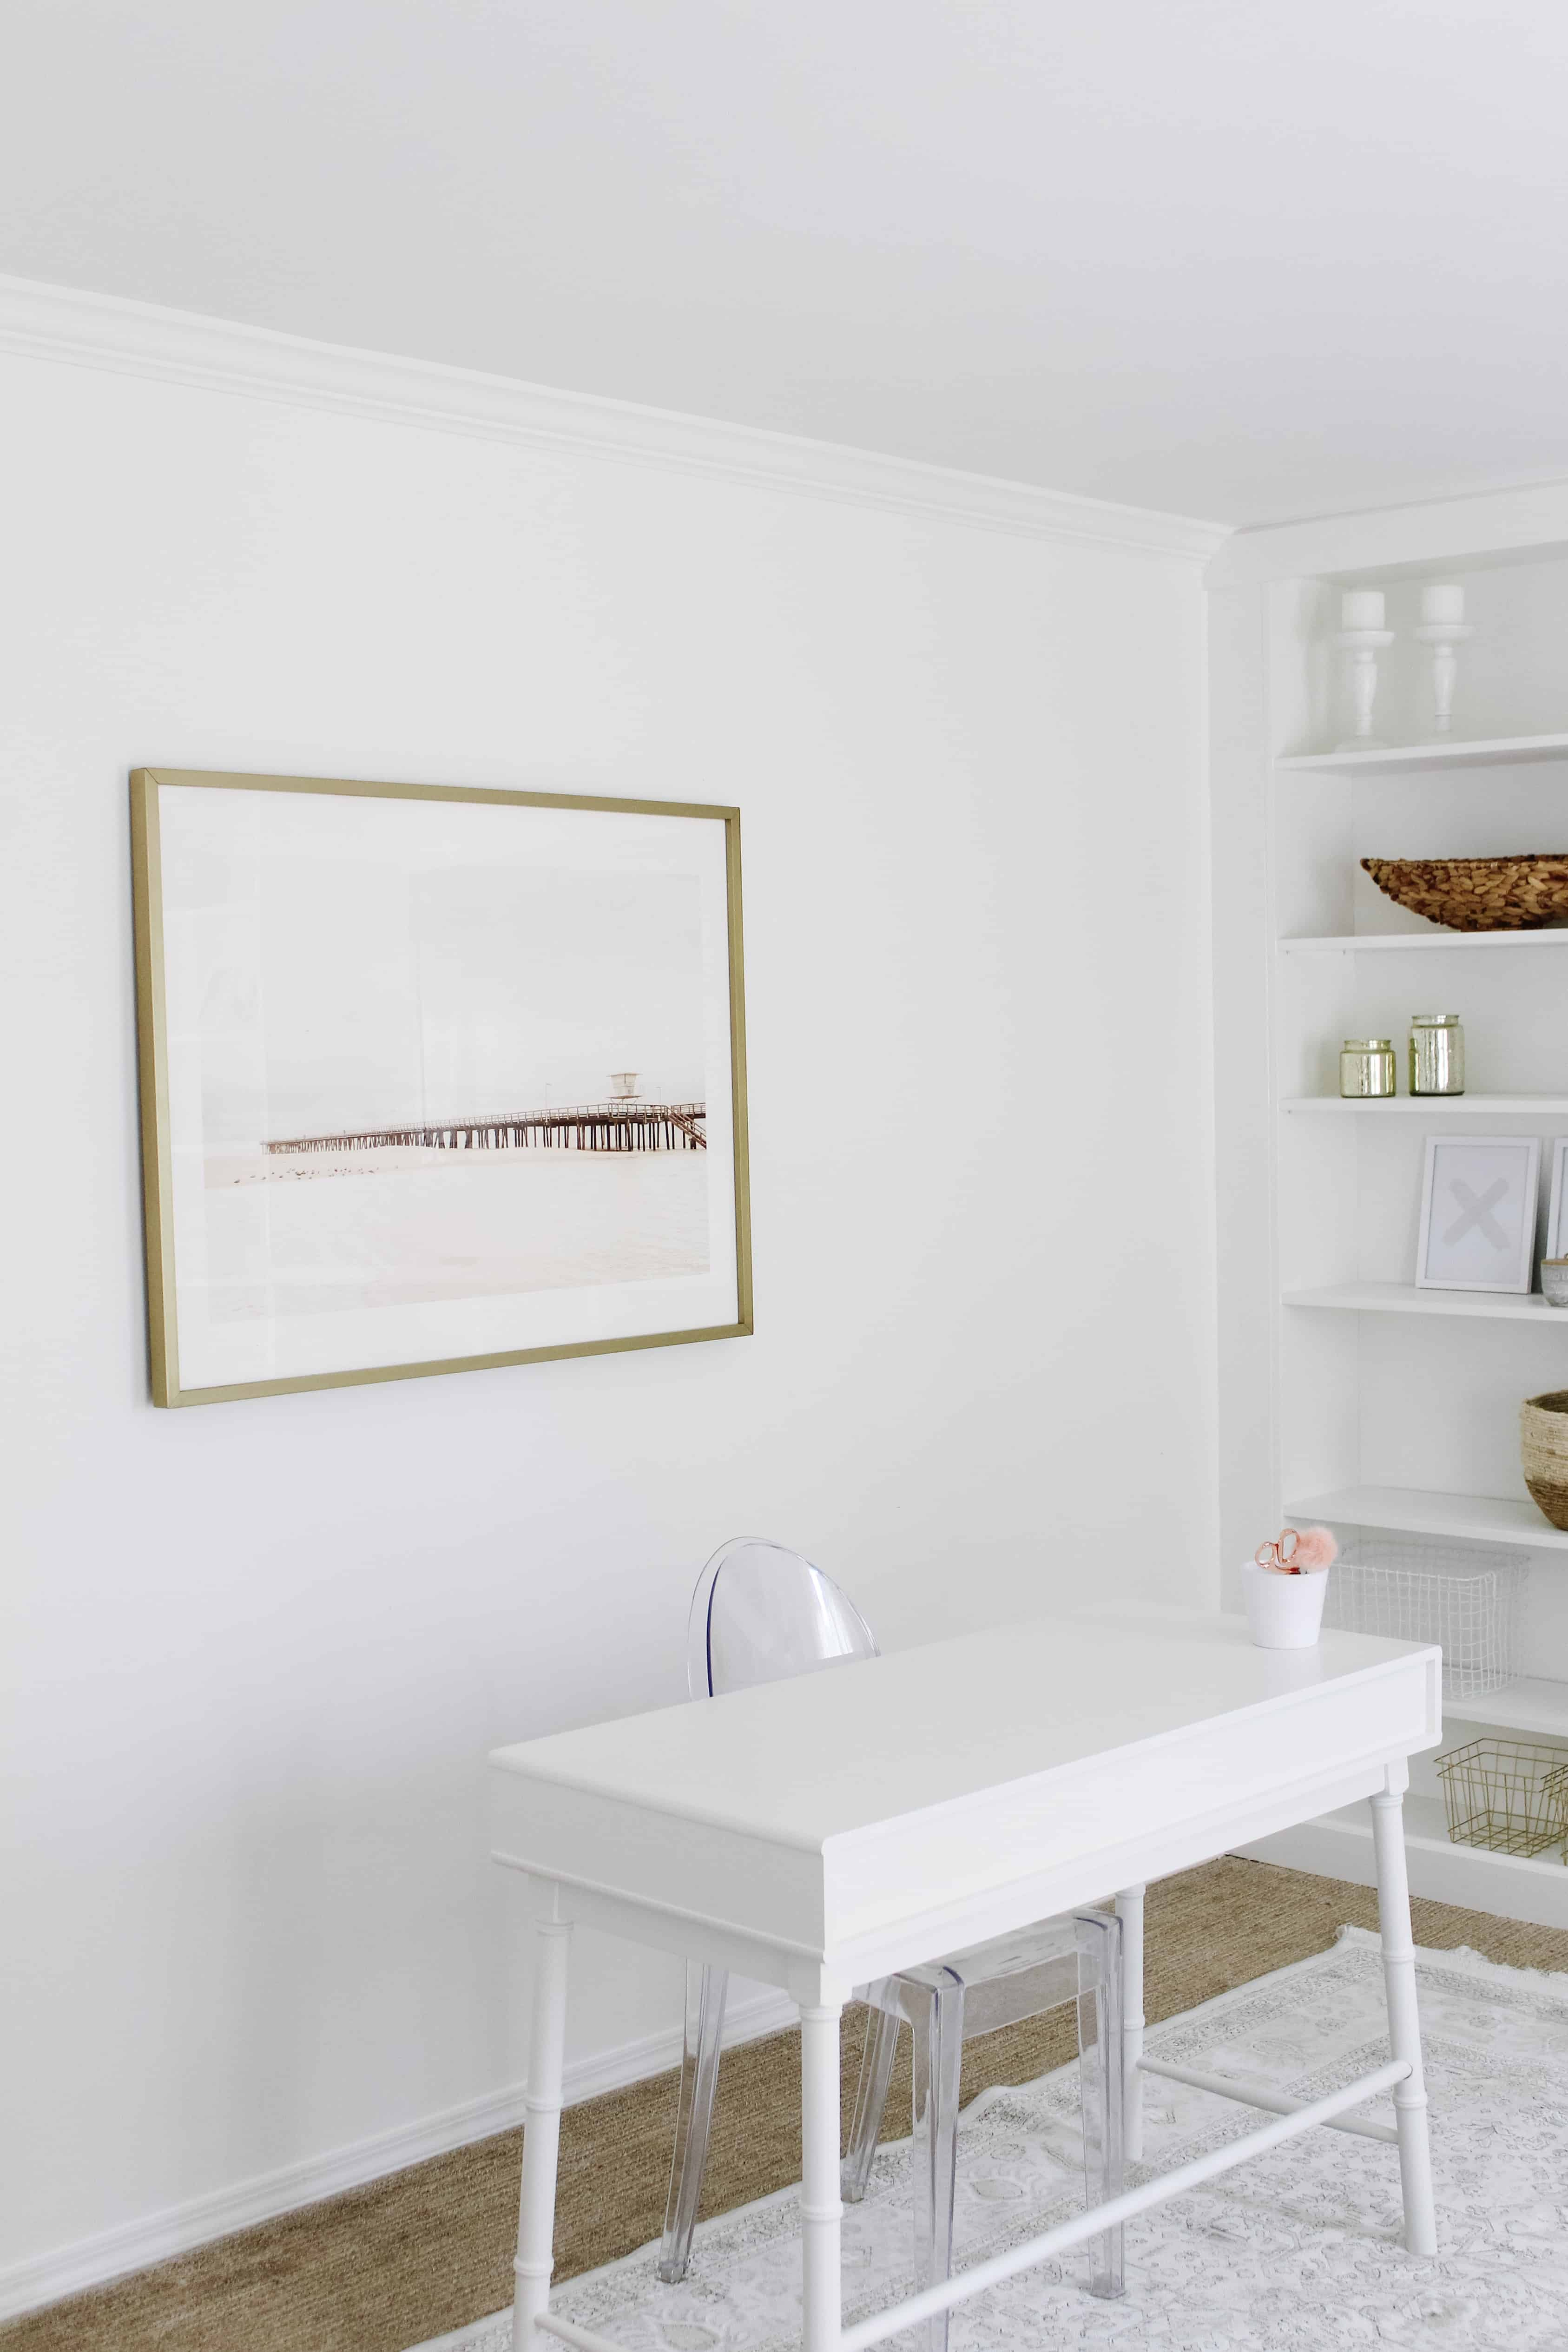 Minted Art over white desk